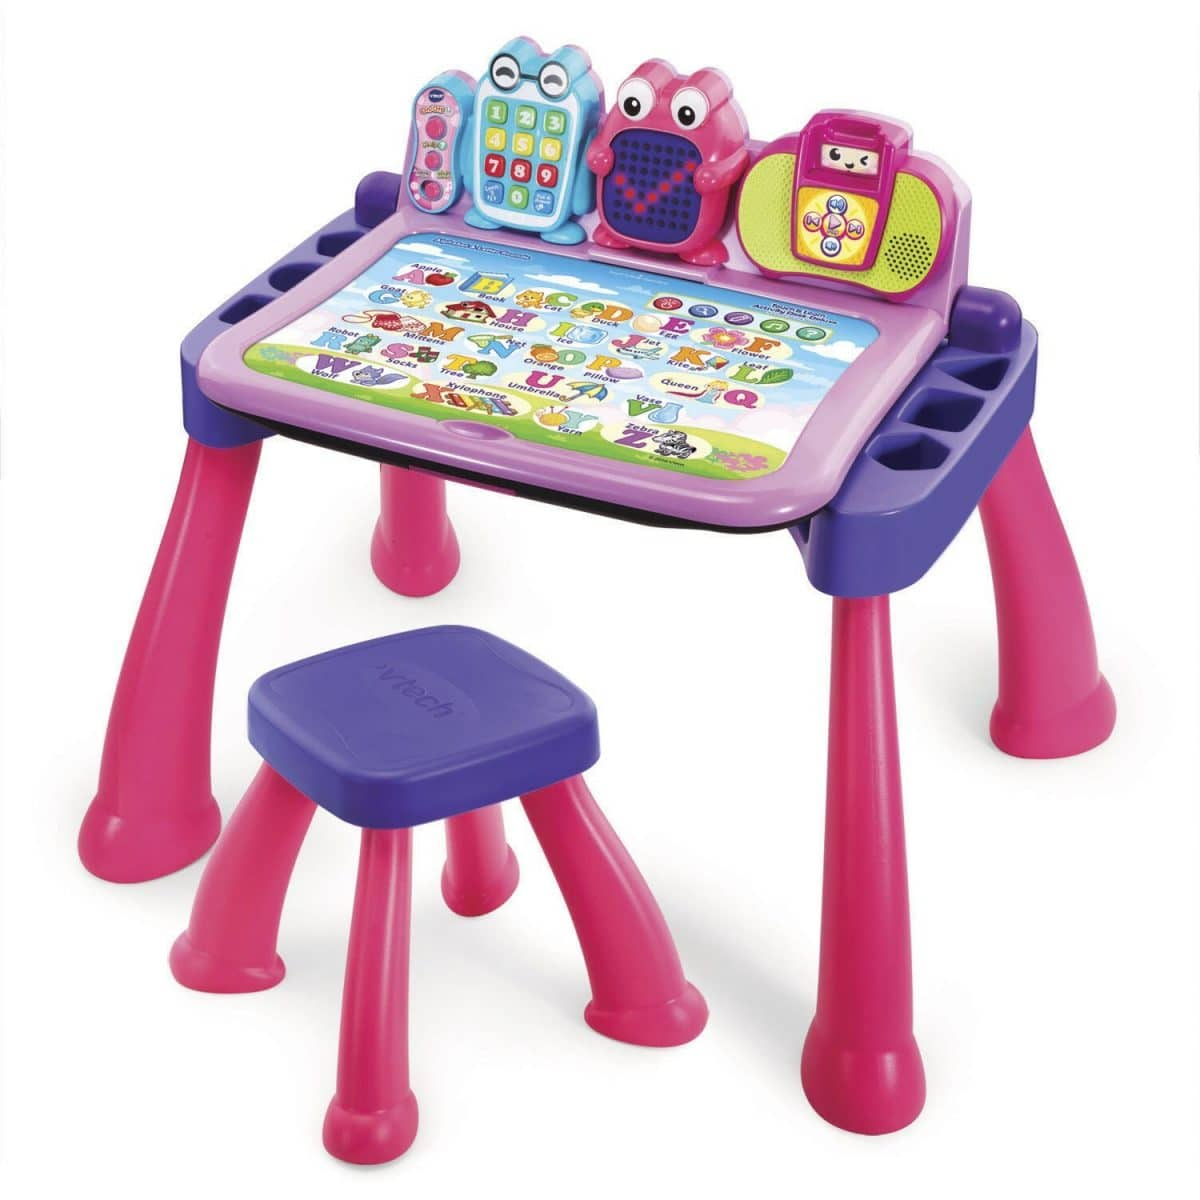 Best Toys And Gift Ideas For 2 Year Old Girls 2020 Littleonemag